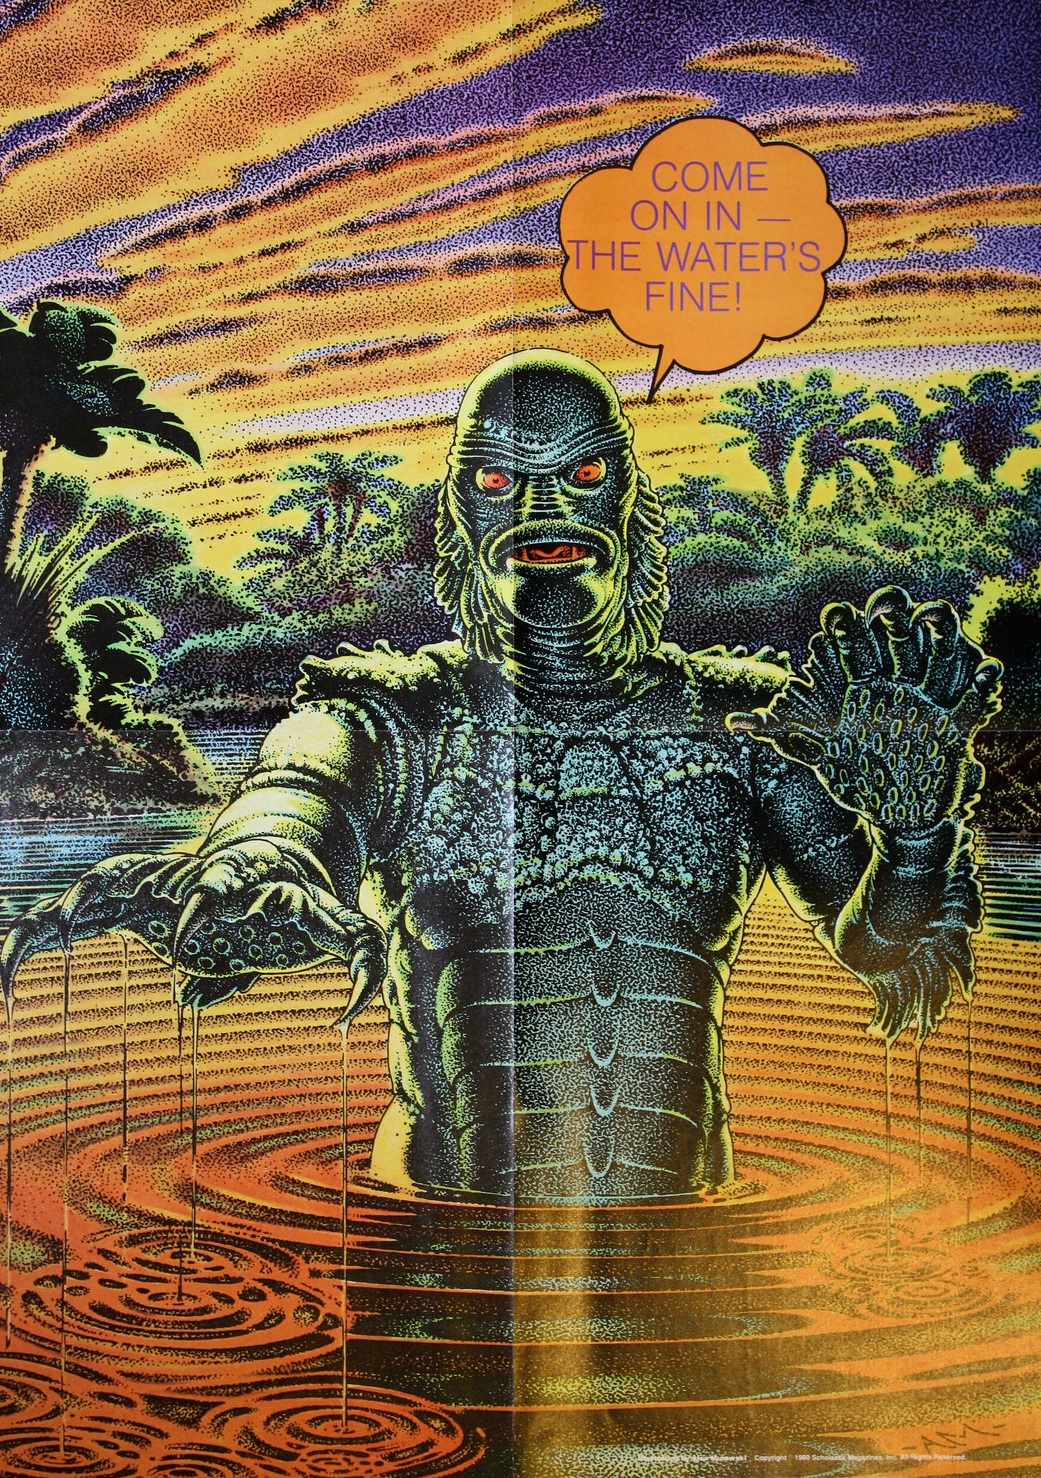 1041x1478 Creature From The Black Lagoon Poster From Weird Worlds - Creature From The Black Lagoon Painting